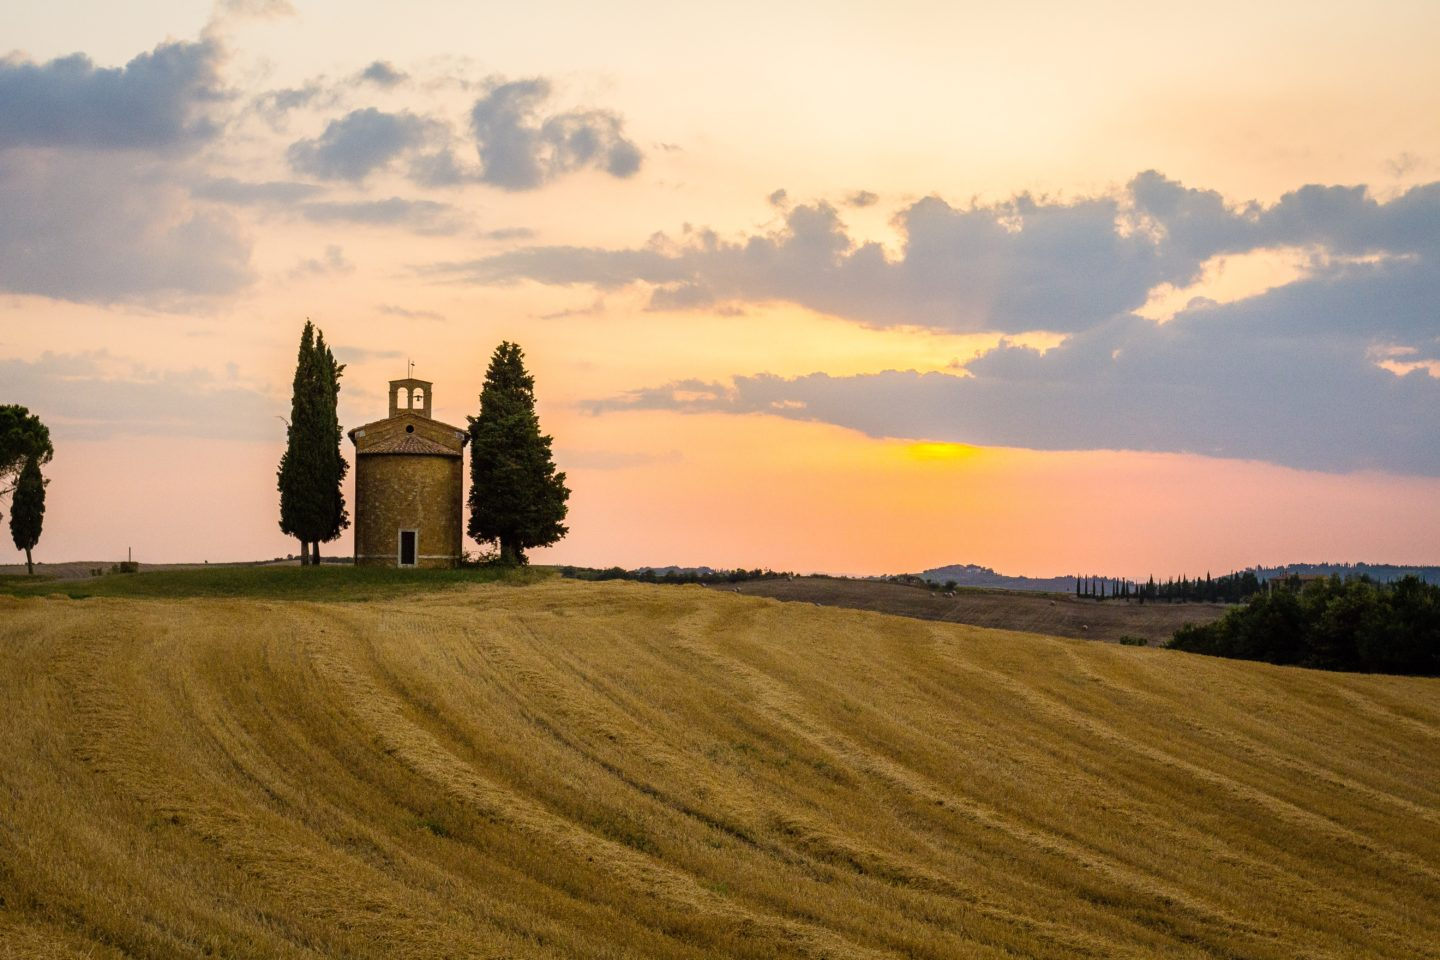 Q&A With High School Abroad Italy Student: Daily Life in Italy